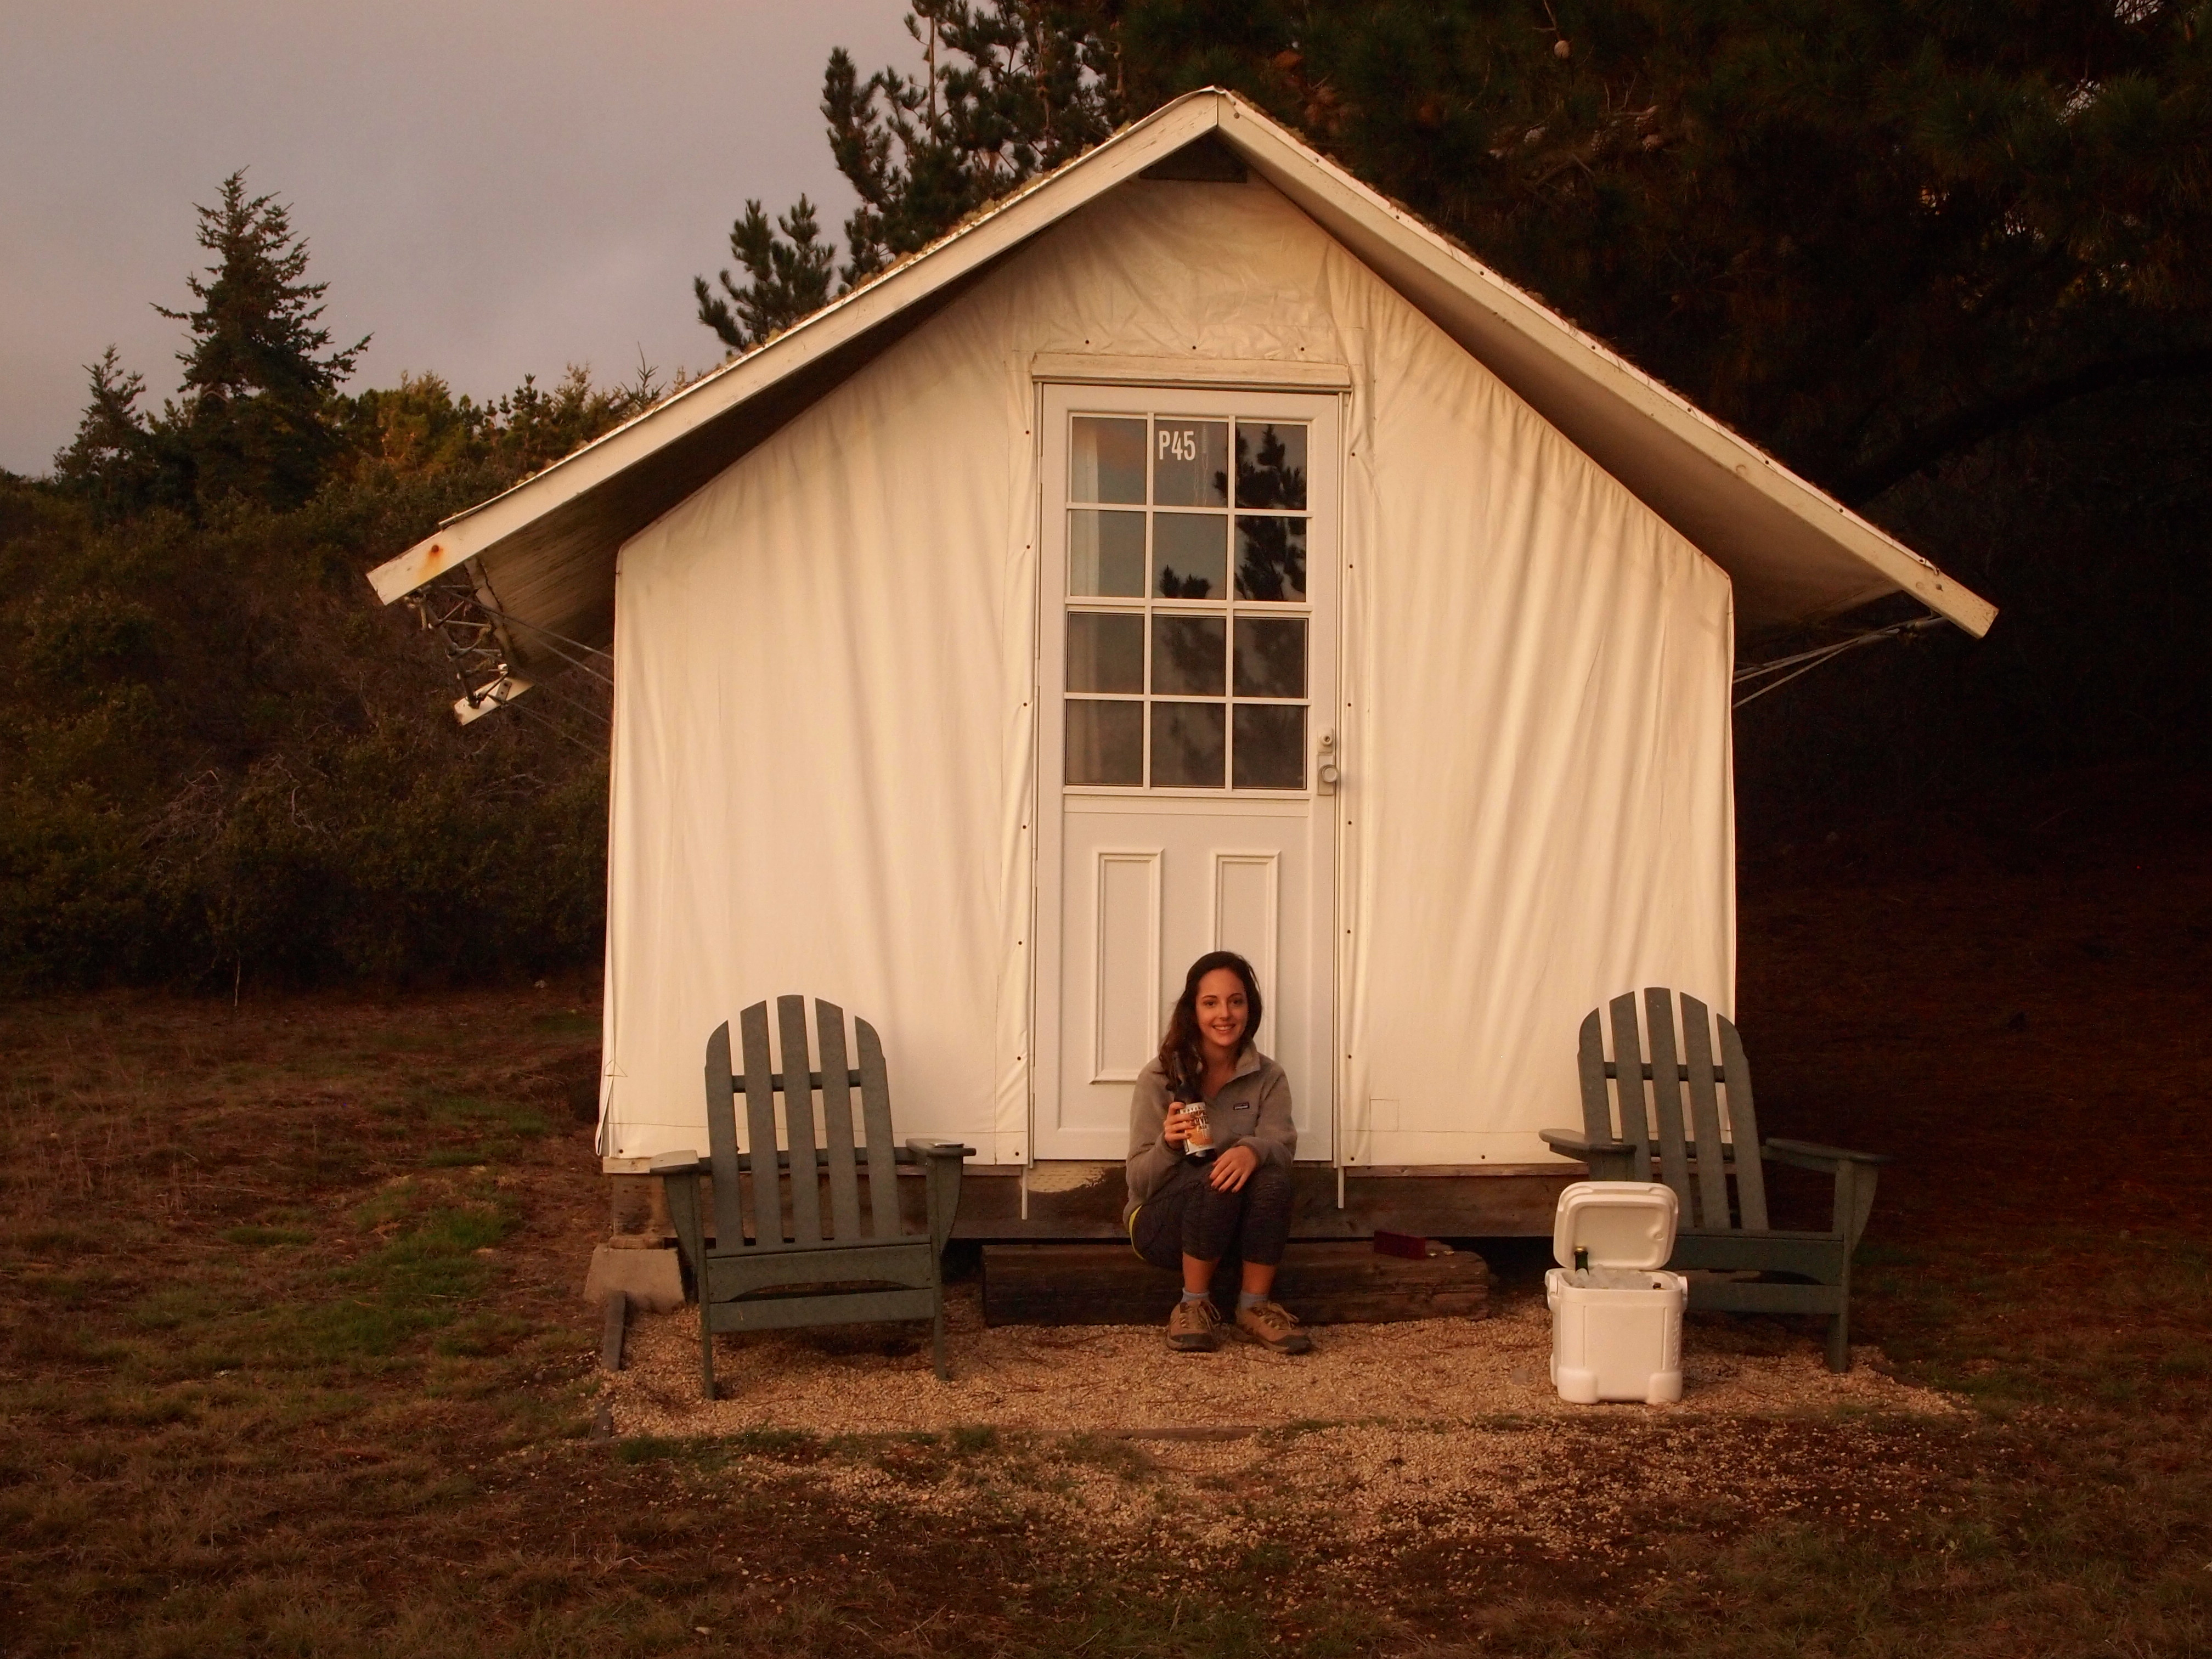 A short and scenic trip from SF down Highway 1 takes you to the quaint town of Pescadero famous for their large and flavorful artichoke crops. & Peace Love u0026 Artichokes in Pescadero | Glamped Out: A Glamping Blog